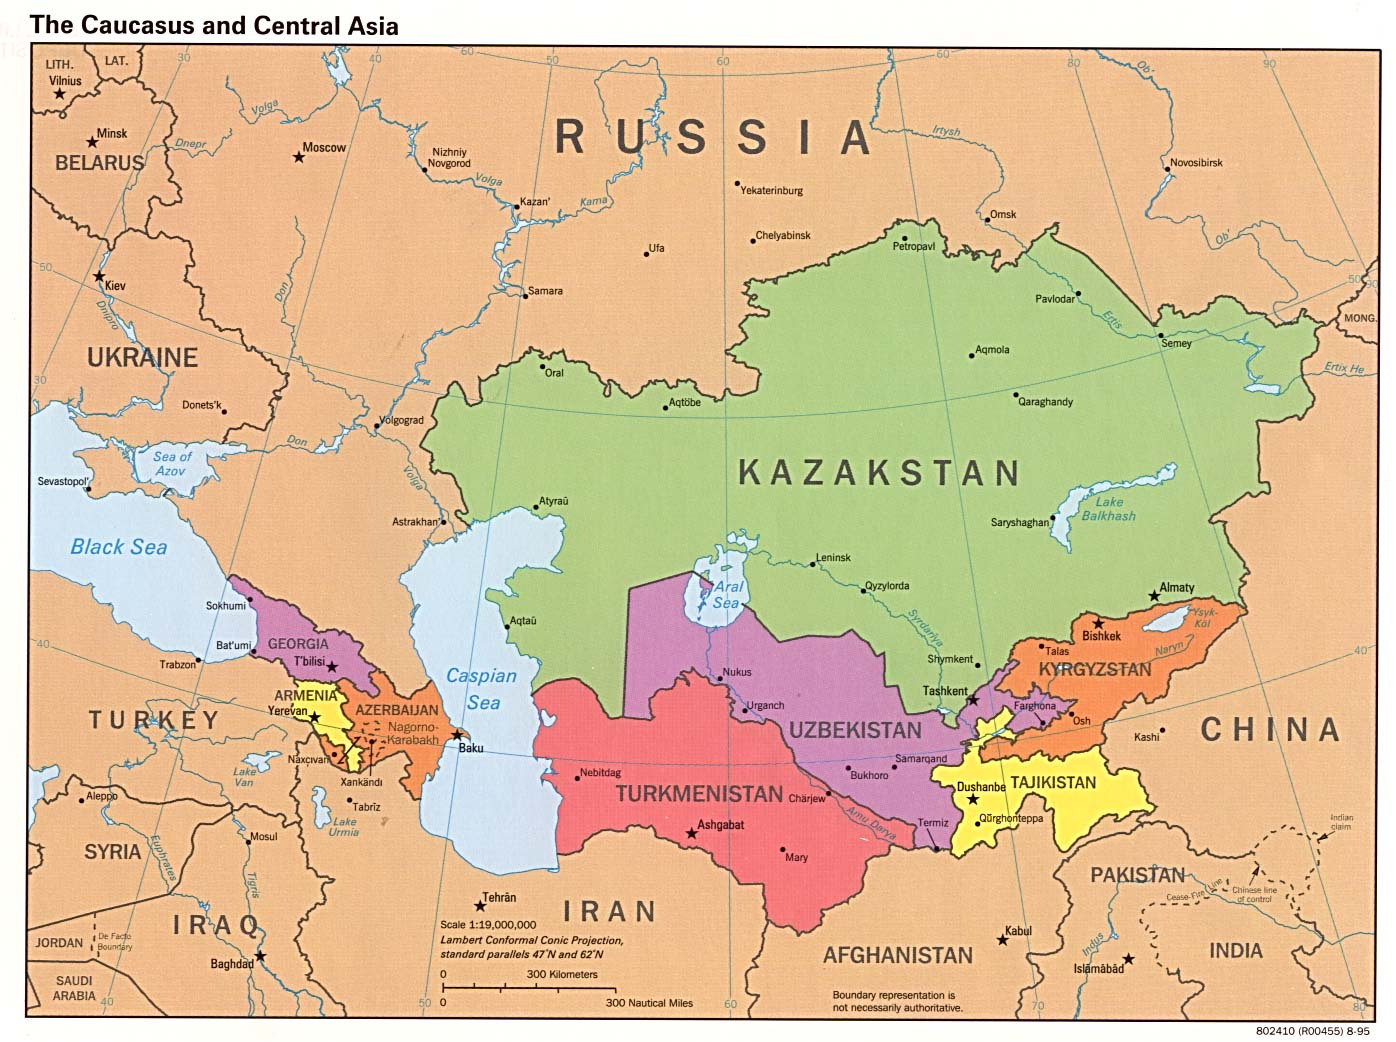 FileThe Caucasus and Central Asia Political Mapjpg Wikimedia